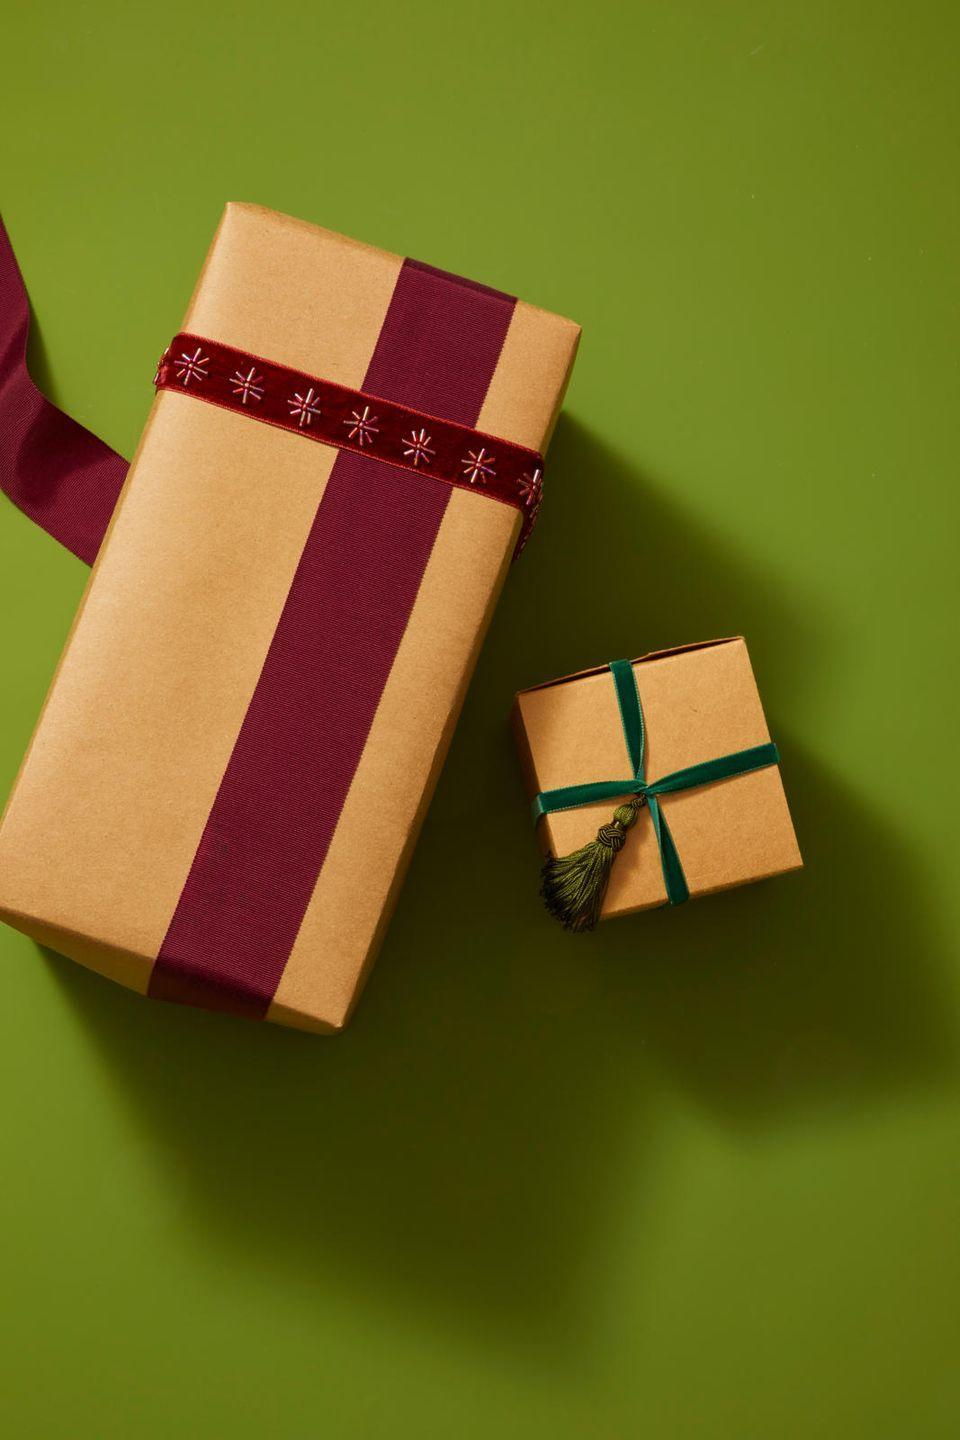 """<p>If you have leftover ribbon or scraps of trim, don't throw them away! Layer them on top of each other to add a little extra something to your gift.</p><p><strong>RELATED: </strong><a href=""""https://www.goodhousekeeping.com/holidays/christmas-ideas/g29148339/best-christmas-gift-tags/"""" rel=""""nofollow noopener"""" target=""""_blank"""" data-ylk=""""slk:Christmas Gift Tags for the Perfect Finishing Touch"""" class=""""link rapid-noclick-resp"""">Christmas Gift Tags for the Perfect Finishing Touch</a></p>"""